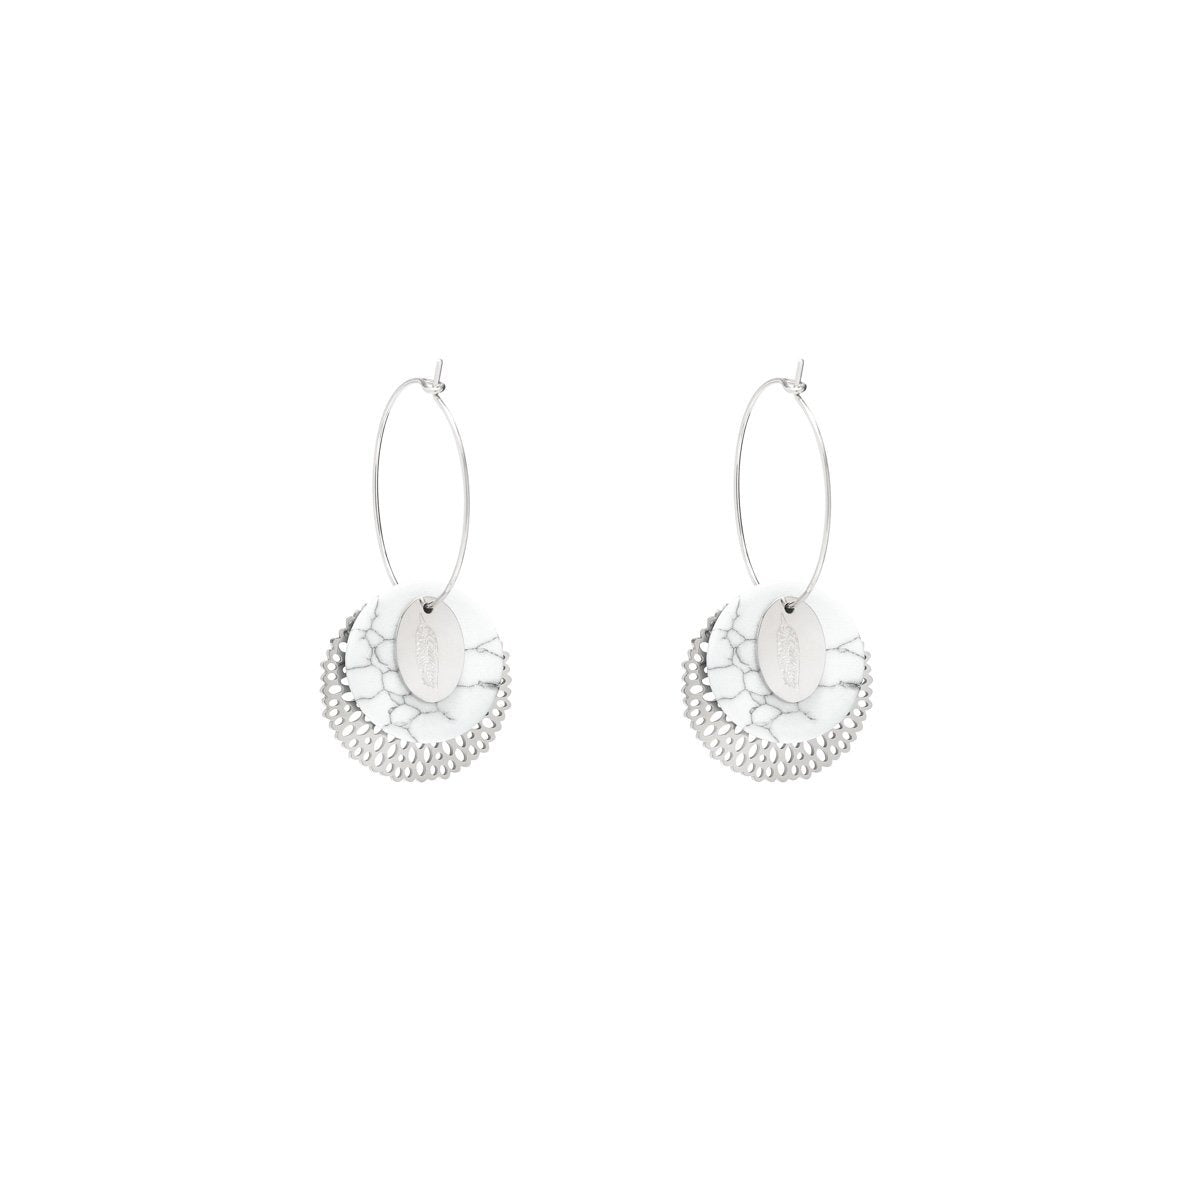 OORBEL MARMER LOOK - ZILVER (1pc)